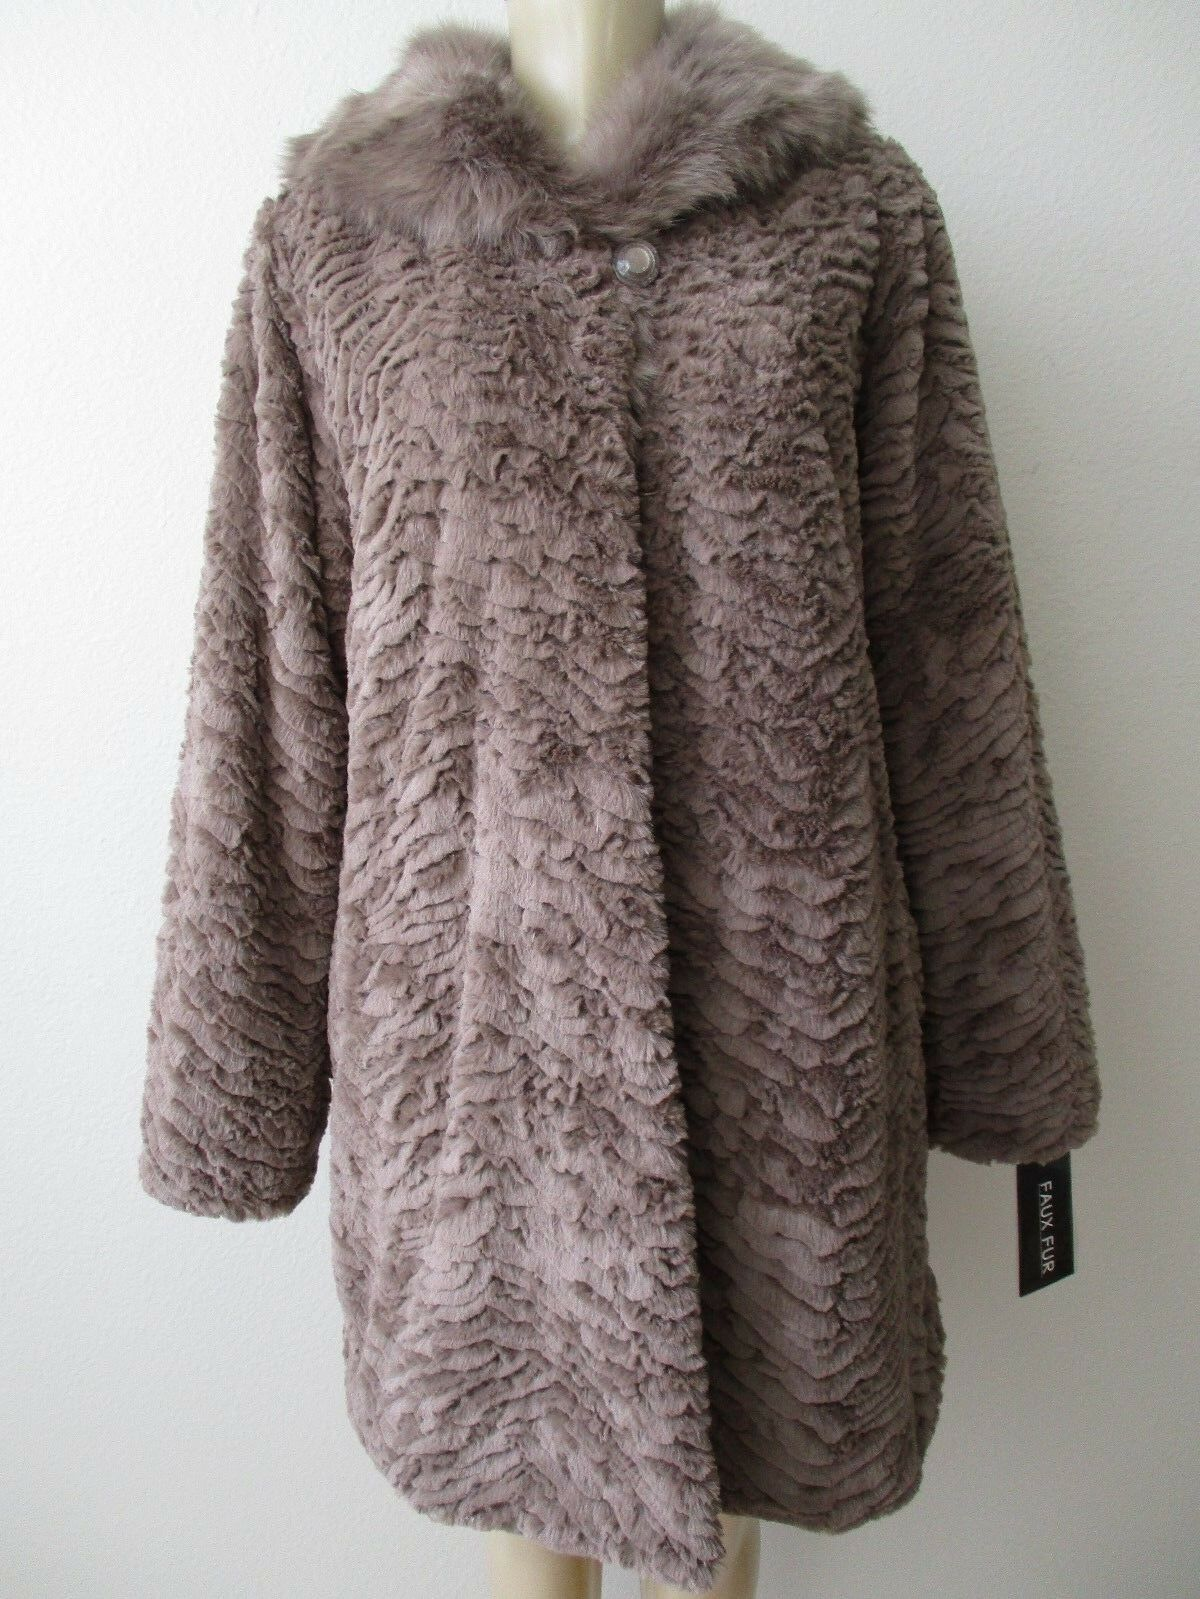 DENNIS BY DENNIS BASSO KHAKI FAUX FUR LONG SLEEVE COAT SIZE XS - NWT